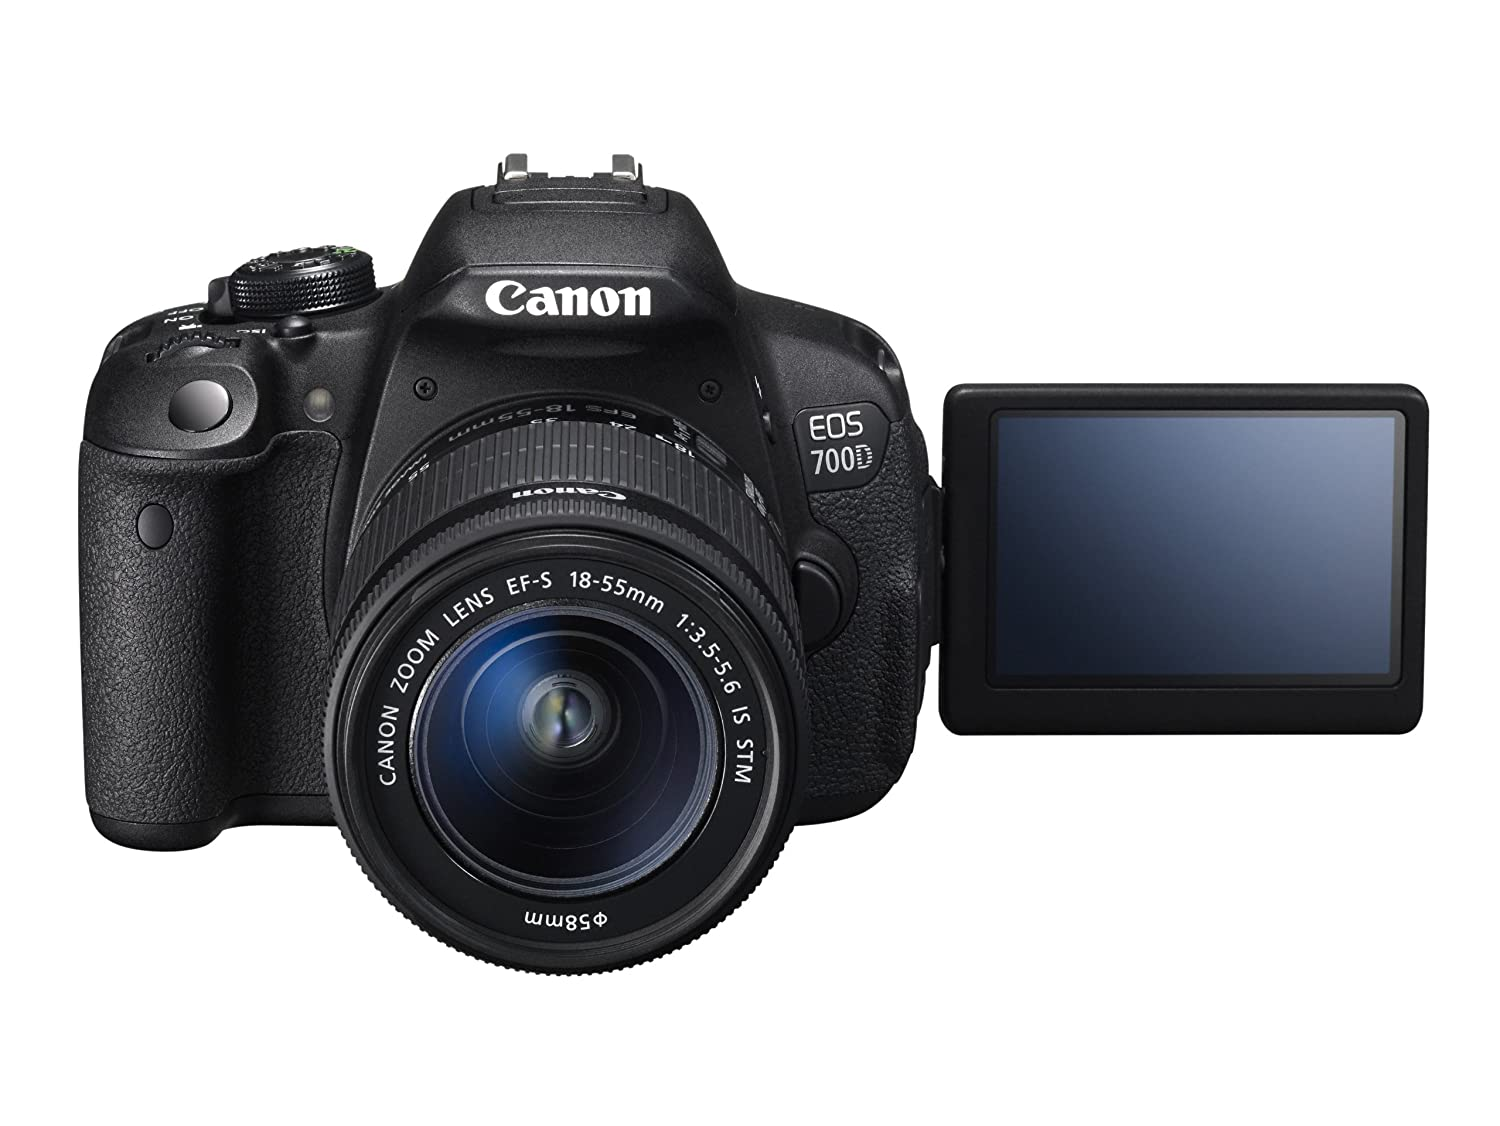 Camera Canon Eos 700d Dslr Camera Review canon eos 700d digital slr camera amazon co uk photo